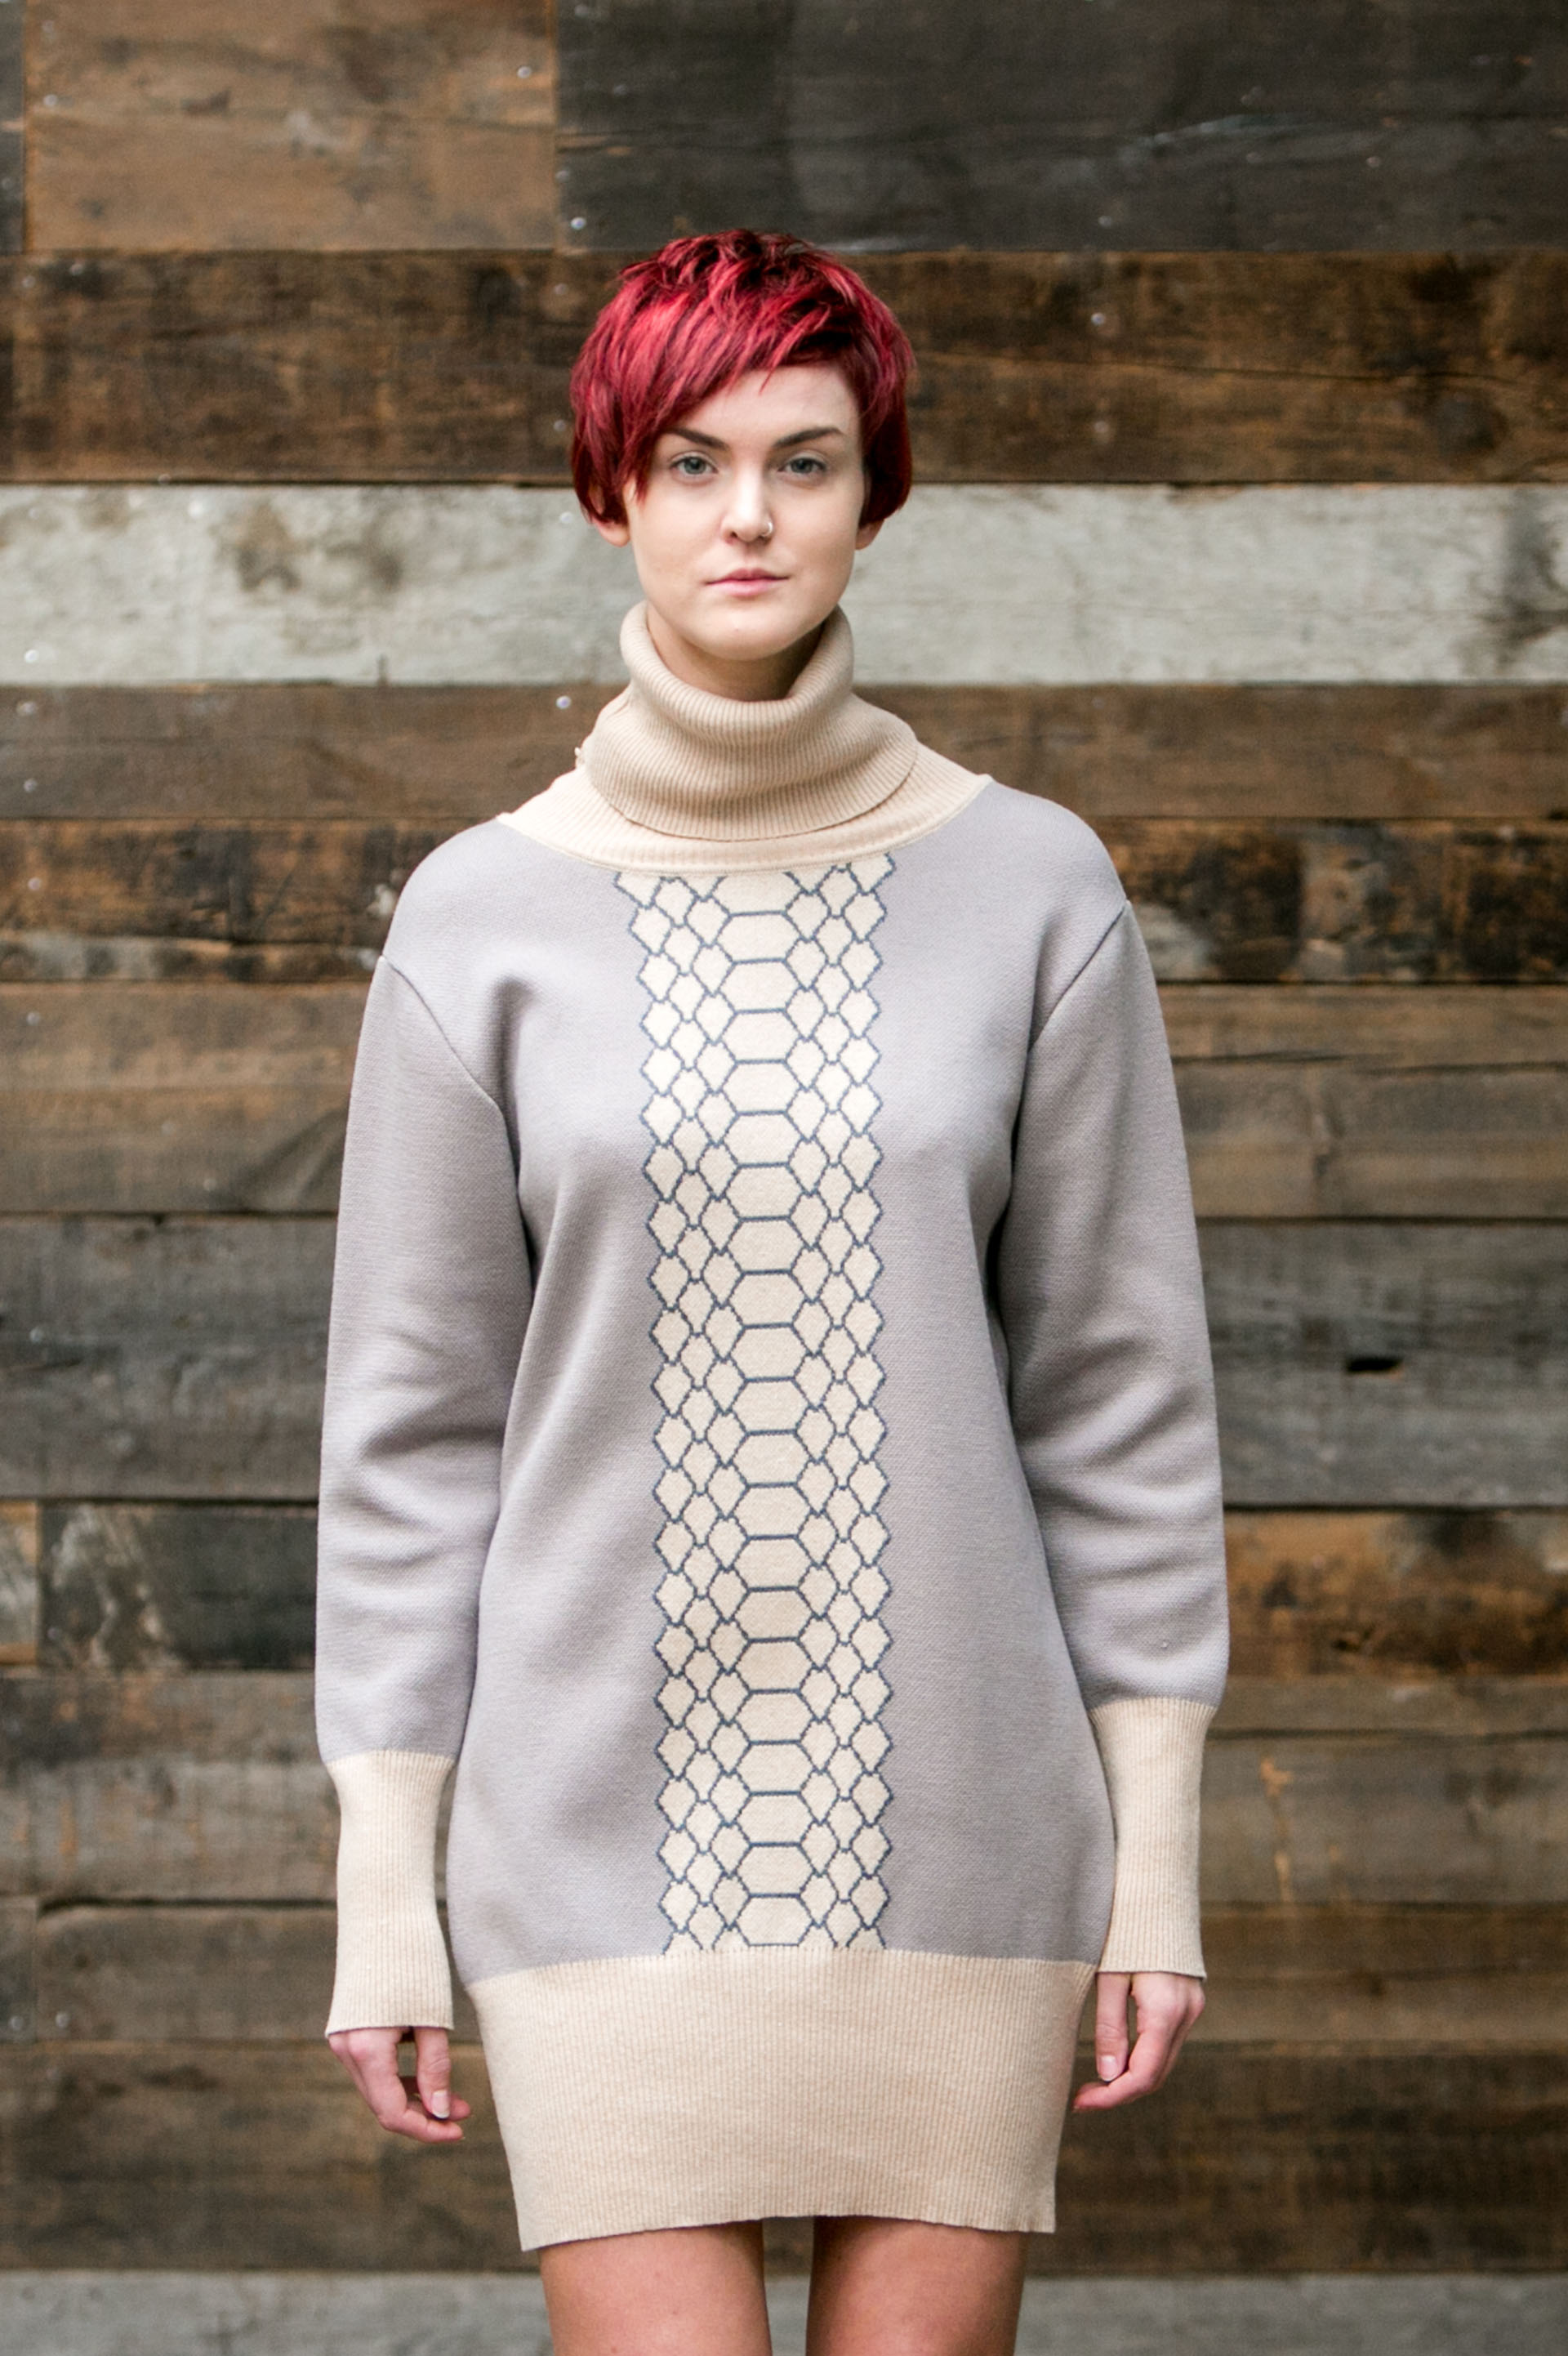 Claire Andrew Ladies Designer Fashion Autumn Winter 16 The Jumper Project